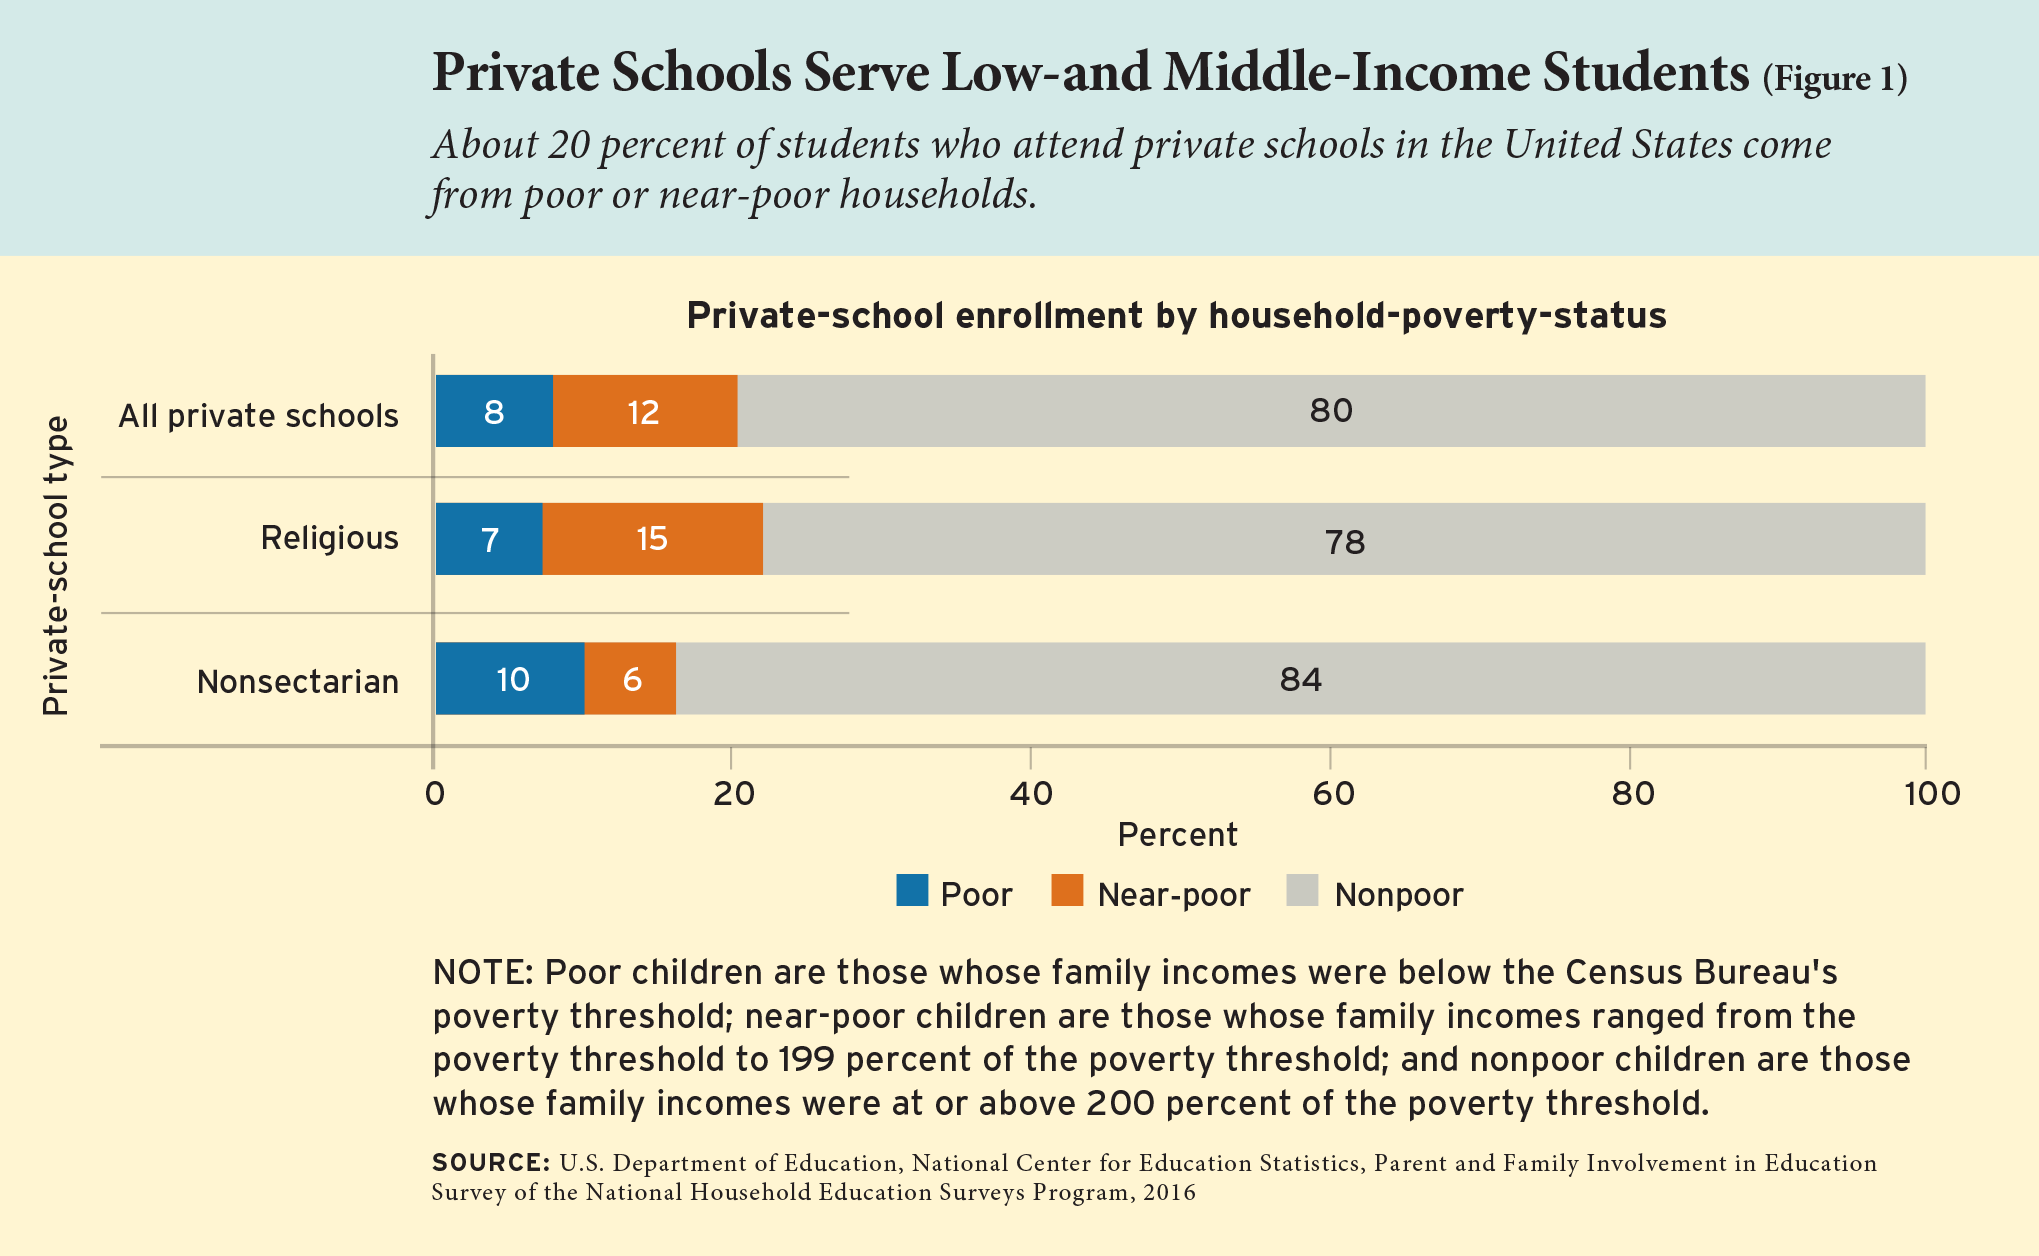 Figure 1: Private Schools Serve Low-and Middle-Income Students